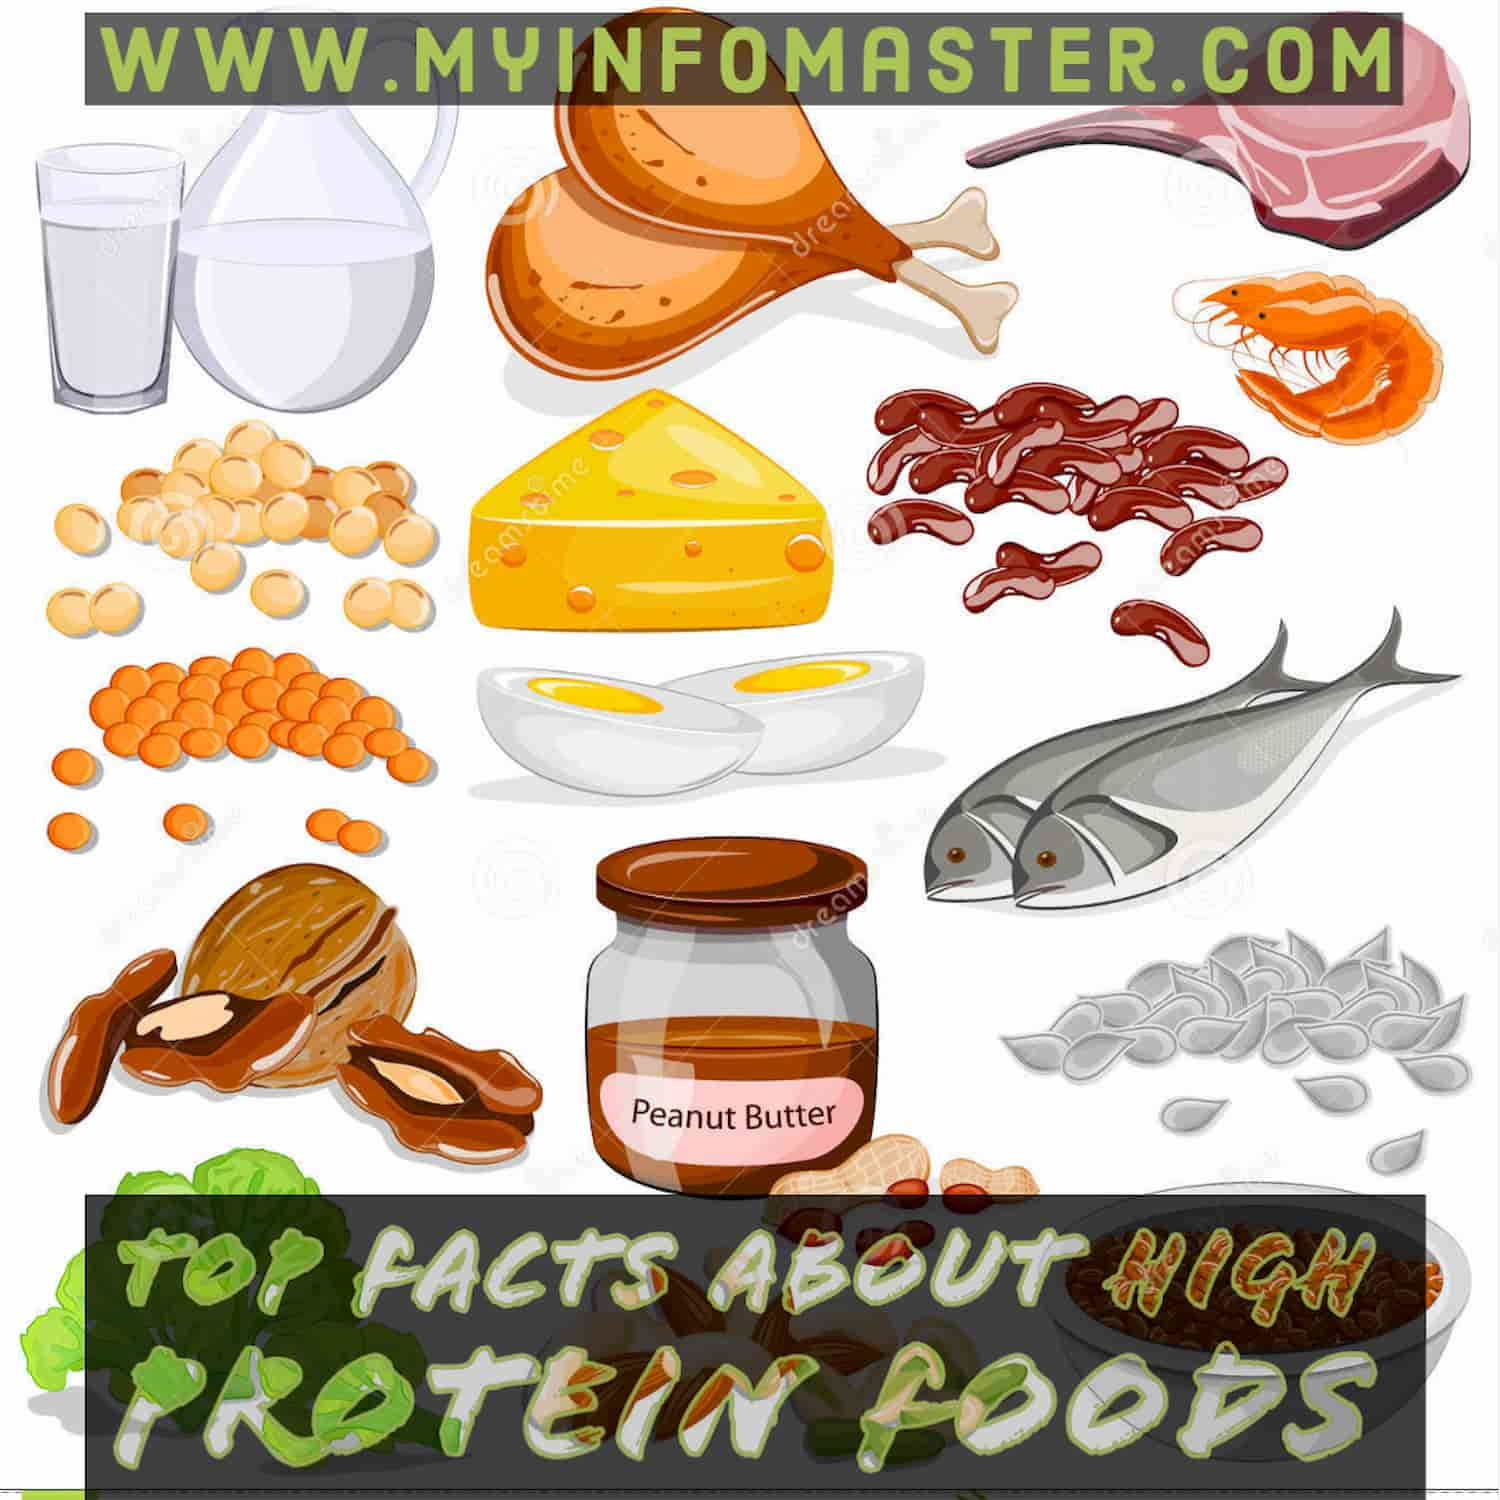 High protein foods, protein foods, high protein diet, protein rich food, high protein snacks, high protein breakfast, sources of protein, protein diet, protein snacks, high protein low carb foods, high protein vegetables, high protein low fat foods, high protein meals, high protein low carb diet, protein breakfast